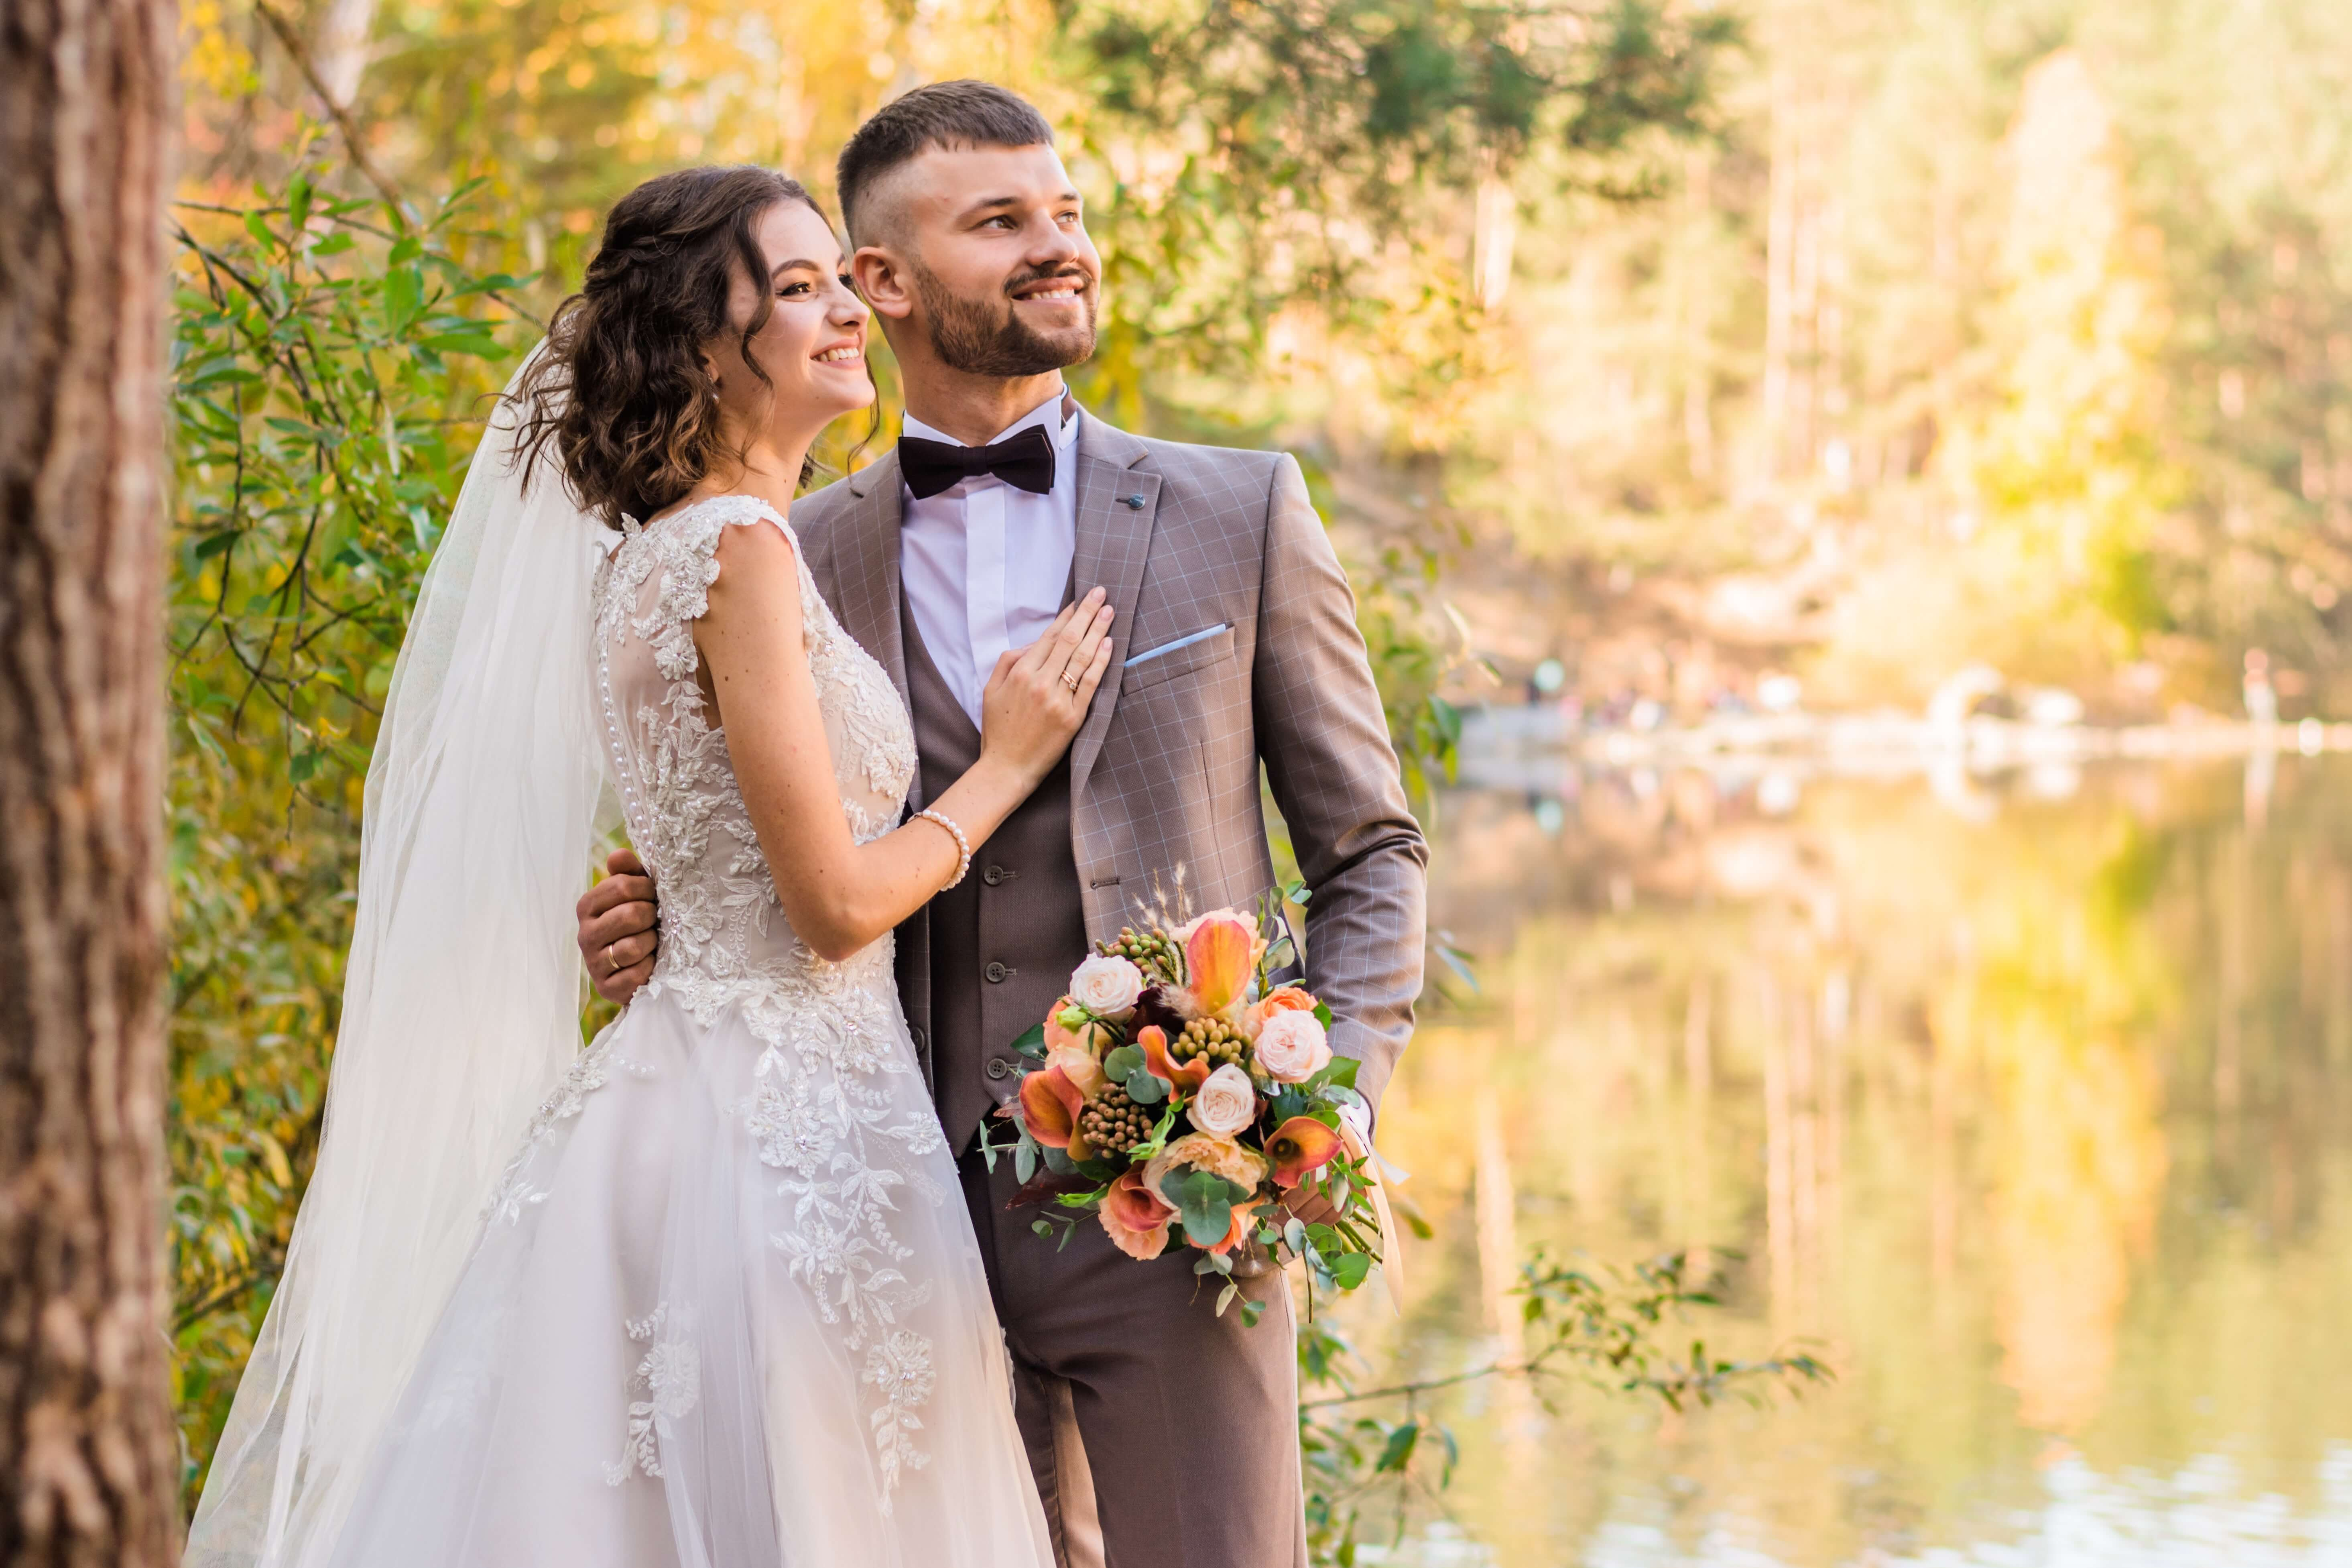 Where can you get a marriage license?